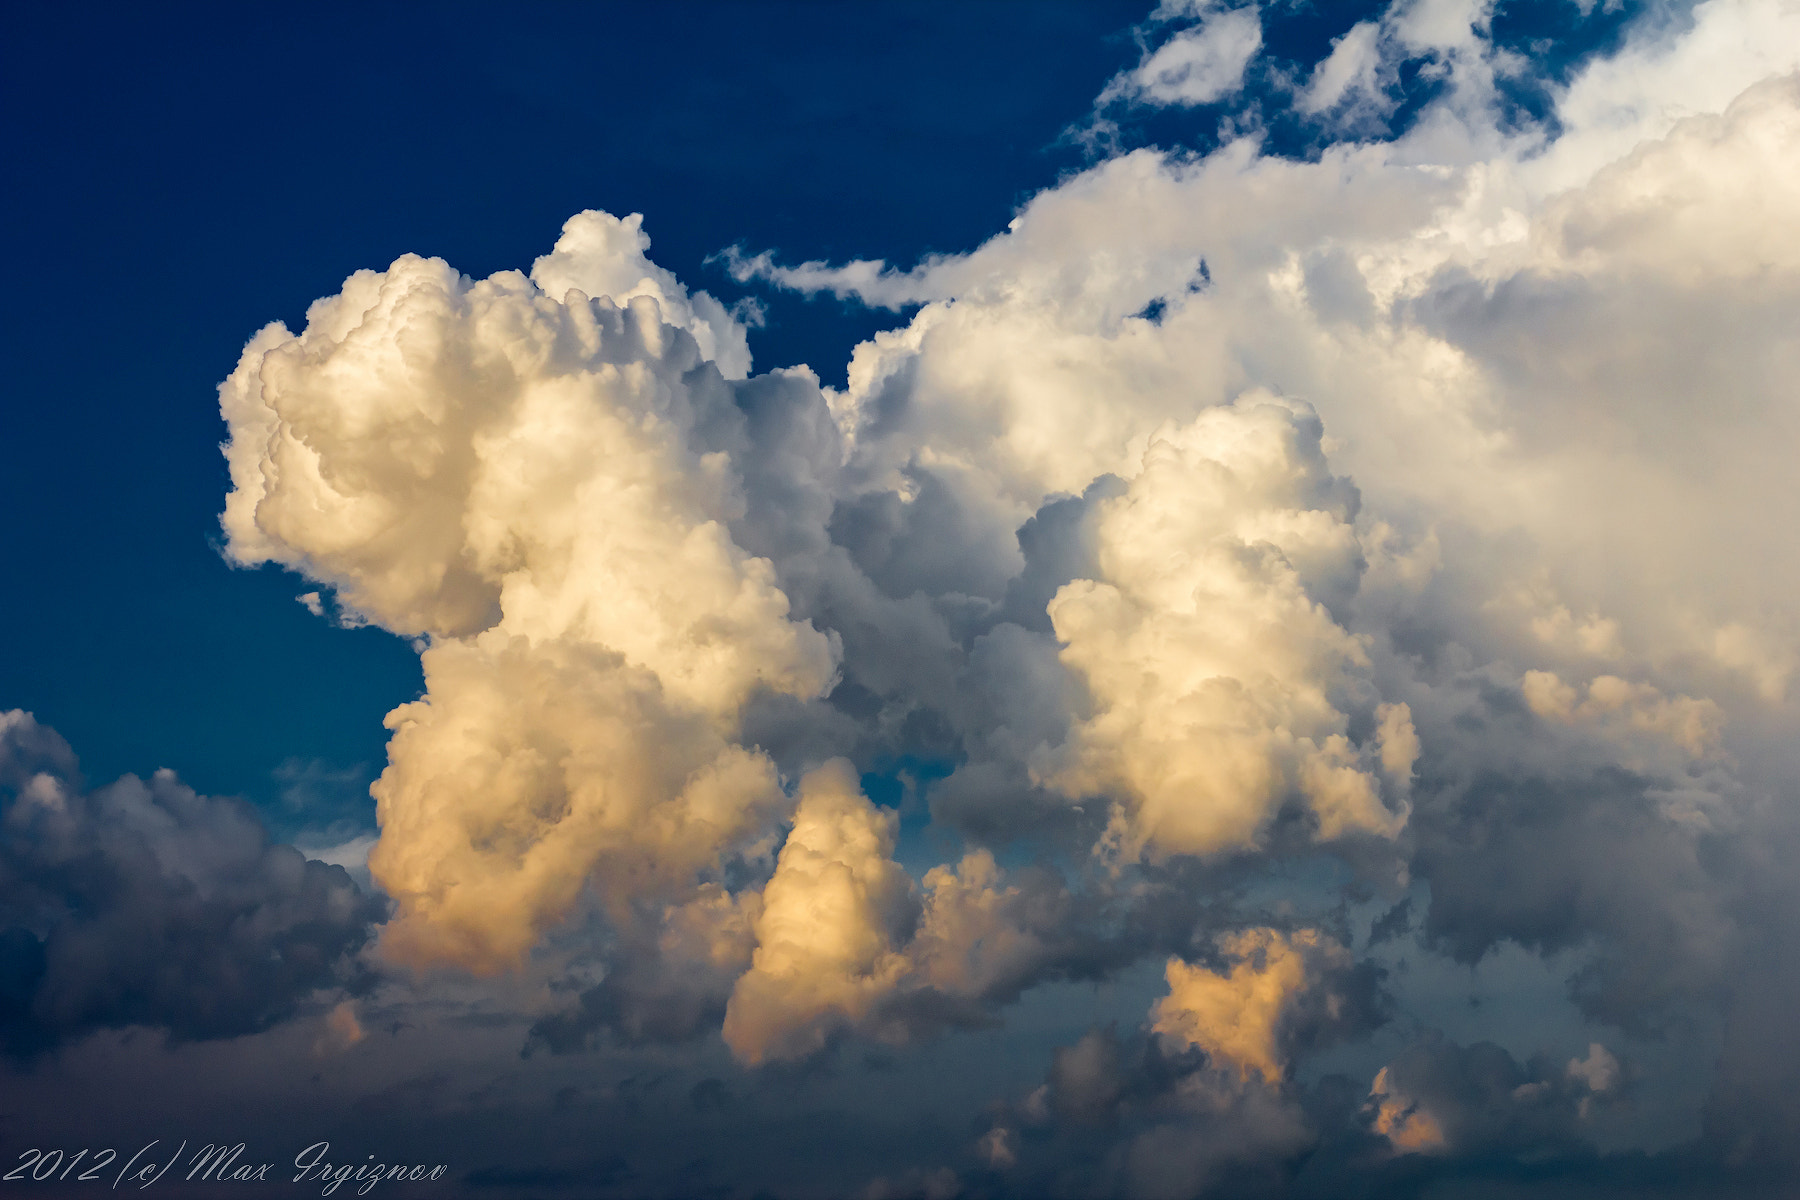 Photograph Clouds at sunset by Max Irgiznov on 500px